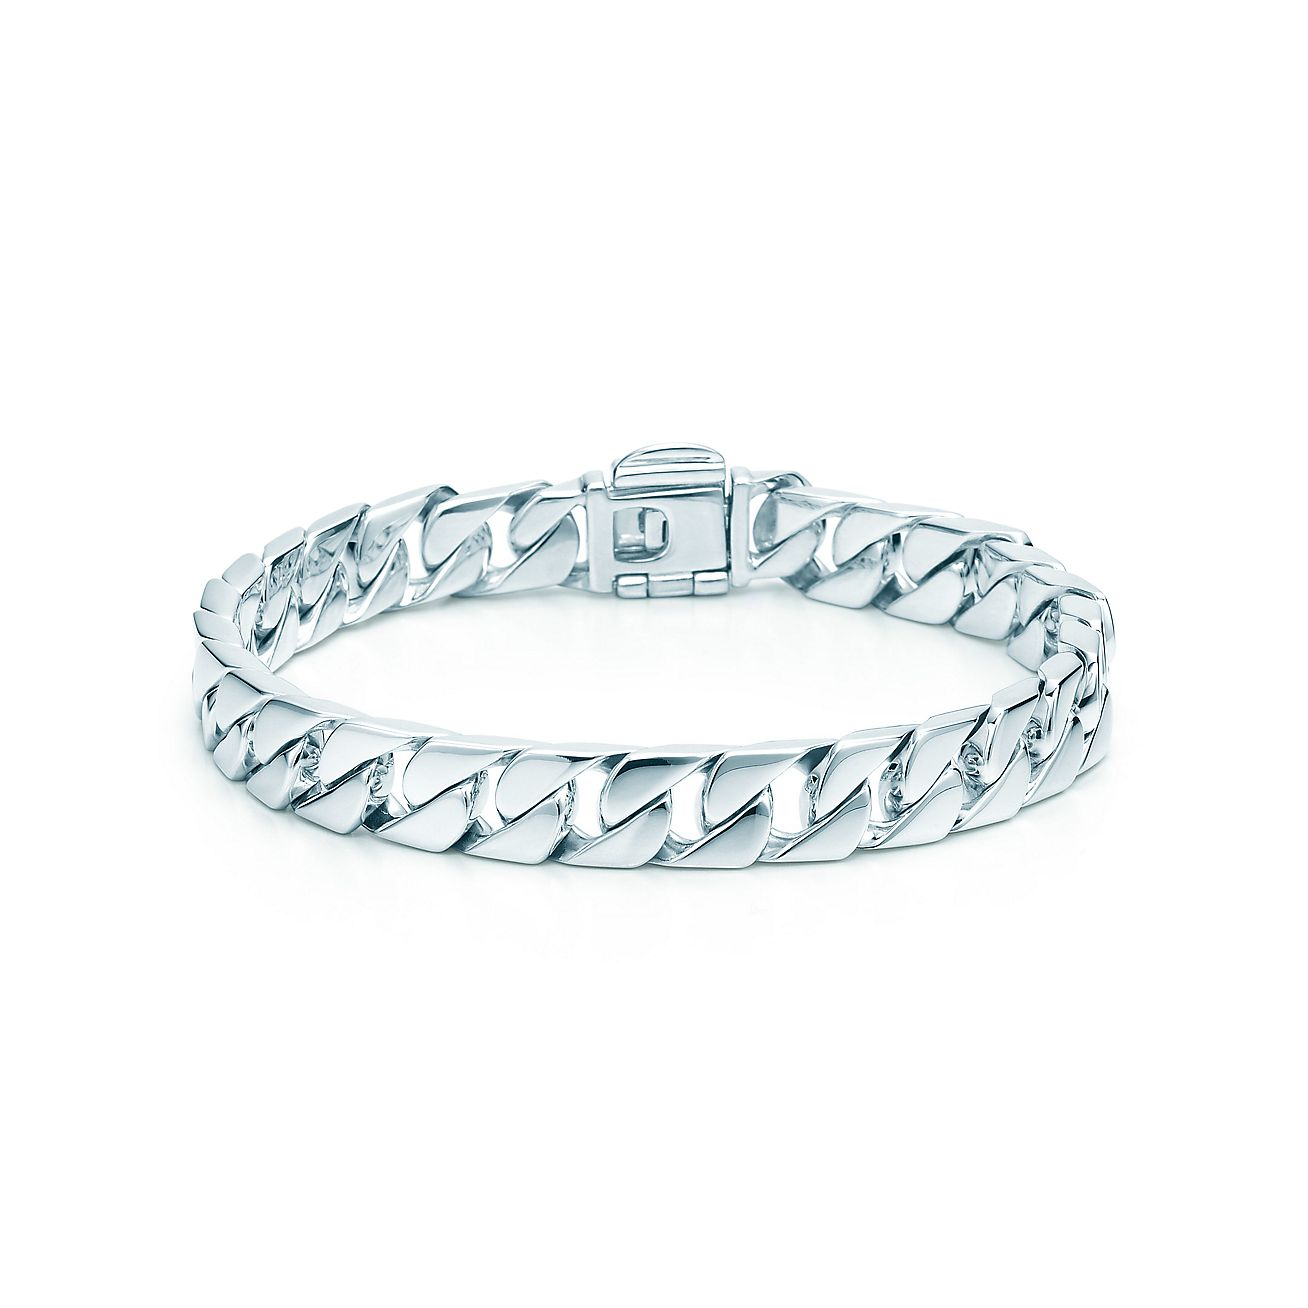 Who Designs Tiffany And Co S Bracelets